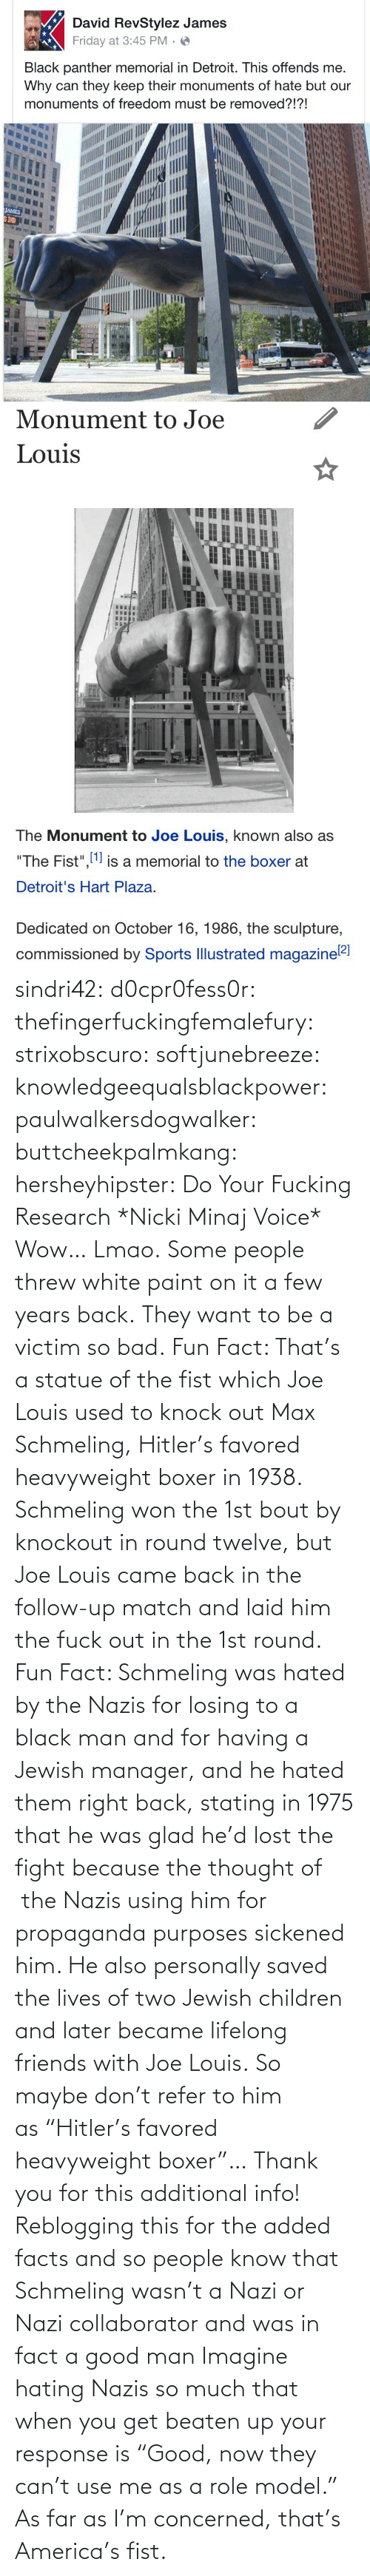 "Thought: sindri42:  d0cpr0fess0r:  thefingerfuckingfemalefury:  strixobscuro:  softjunebreeze:  knowledgeequalsblackpower:  paulwalkersdogwalker:   buttcheekpalmkang:   hersheyhipster:  Do Your Fucking Research *Nicki Minaj Voice*    Wow… Lmao.   Some people threw white paint on it a few years back.   They want to be a victim so bad.  Fun Fact: That's a statue of the fist which Joe Louis used to knock out Max Schmeling, Hitler's favored heavyweight boxer in 1938. Schmeling won the 1st bout by knockout in round twelve, but Joe Louis came back in the follow-up match and laid him the fuck out in the 1st round.  Fun Fact: Schmeling was hated by the Nazis for losing to a black man and for having a Jewish manager, and he hated them right back, stating in 1975 that he was glad he'd lost the fight because the thought of  the Nazis using him for propaganda purposes sickened him. He also personally saved the lives of two Jewish children and later became lifelong friends with Joe Louis. So maybe don't refer to him as ""Hitler's favored heavyweight boxer""…  Thank you for this additional info! Reblogging this for the added facts and so people know that Schmeling wasn't a Nazi or Nazi collaborator and was in fact a good man   Imagine hating Nazis so much that when you get beaten up your response is ""Good, now they can't use me as a role model.""  As far as I'm concerned, that's America's fist."